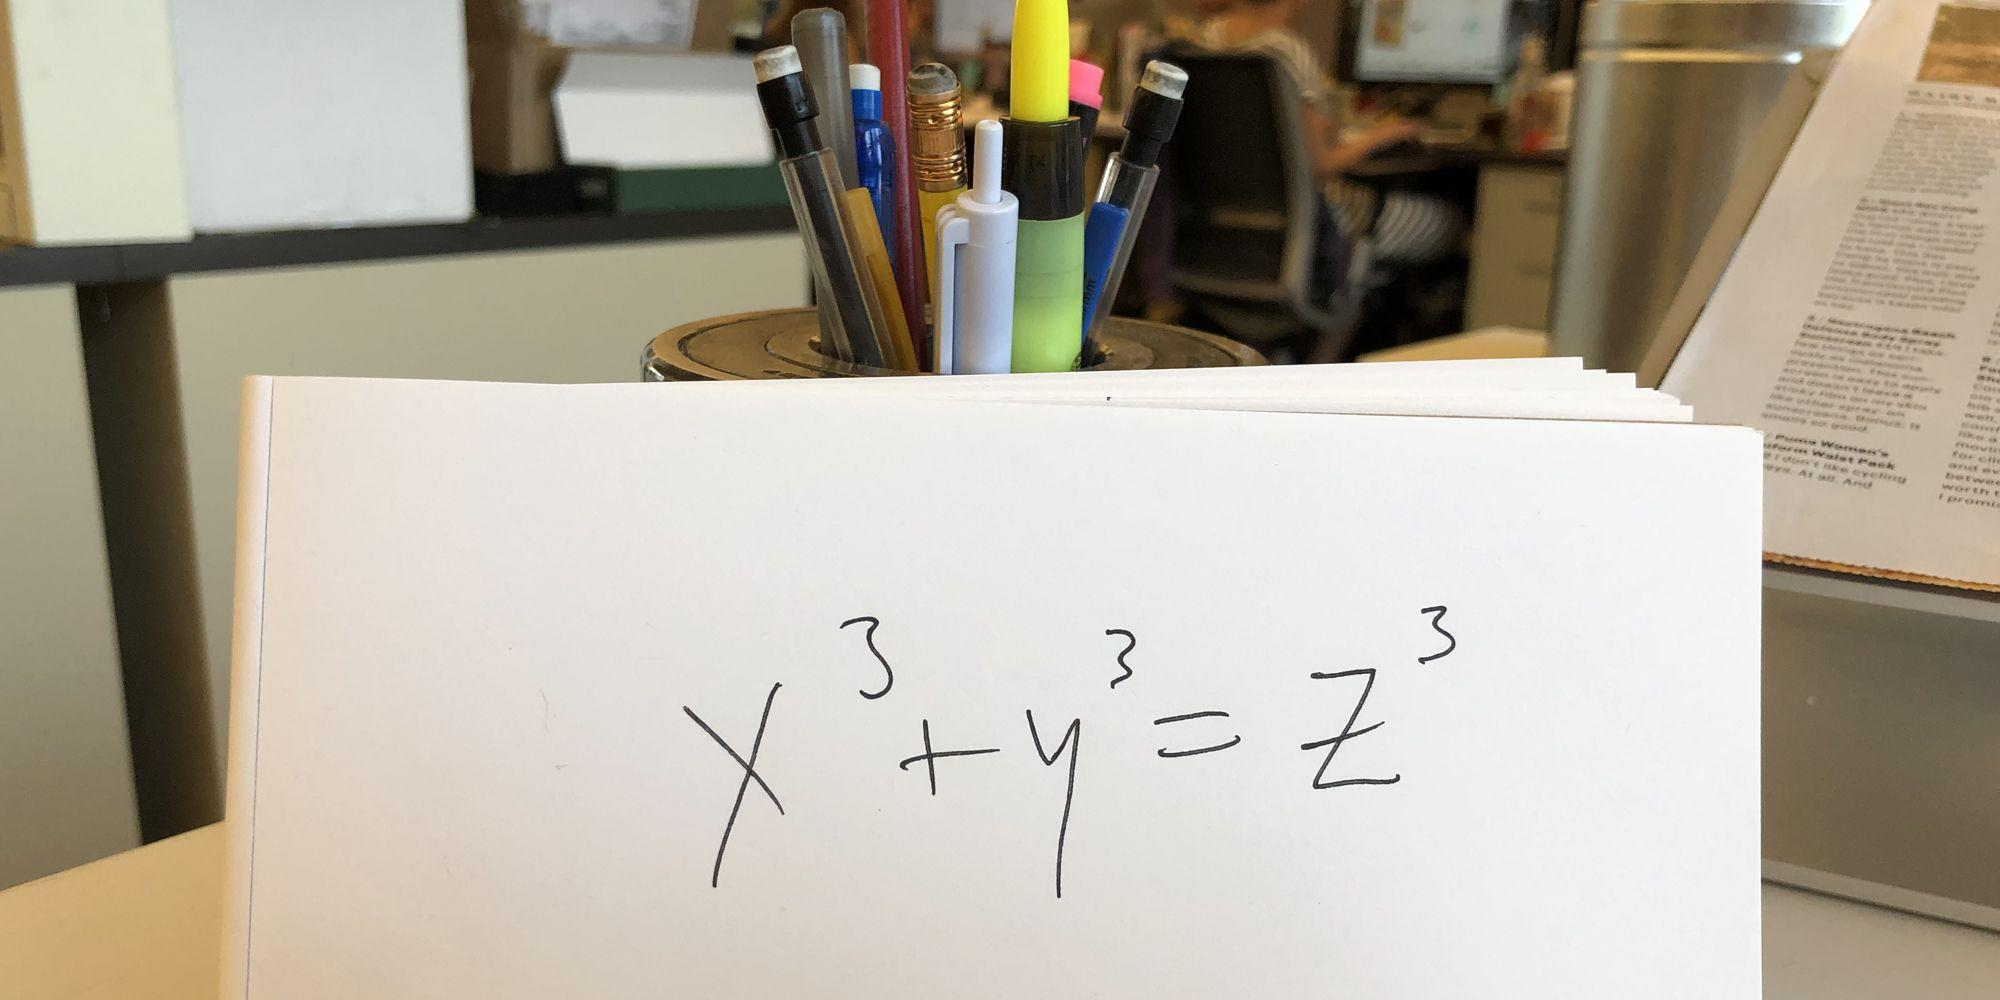 "<p>Earlier this week, a <a href=""https://www.popularmechanics.com/science/math/a28943849/unsolvable-math-problem/"" rel=""nofollow noopener"" target=""_blank"" data-ylk=""slk:math puzzle"" class=""link rapid-noclick-resp"">math puzzle</a> that had stumped mathematicians for decades was finally solved. It's called a Diophantine Equation, and it's sometimes known as the ""summing of three cubes"": Find x, y, and z such that x³+y³+z³=k, for each k from 1 to 100.</p><p>On the surface, it seems easy. Can you think of the integers for x, y, and z so that x³+y³+z³=8? Sure. One answer is x = 1, y = -1, and z = 2. But what about the integers for x, y, and z so that x³+y³+z³=42? </p><p>That turned out to be much harder—as in, no one was able to solve for those integers for 65 years until a supercomputer finally came up with the solution to 42. (For the record: x = -80538738812075974, y = 80435758145817515, and z = 12602123297335631. Obviously.)</p><p>That's the beauty of math: There's always an answer for everything, even if takes years, decades, or even centuries to find it. So here are nine more brutally difficult <a href=""https://www.popularmechanics.com/science/math/a28569610/viral-math-problem-2019-solved/"" rel=""nofollow noopener"" target=""_blank"" data-ylk=""slk:math problem"" class=""link rapid-noclick-resp"">math problem</a>s that once seemed impossible until mathematicians found a breakthrough.</p>"